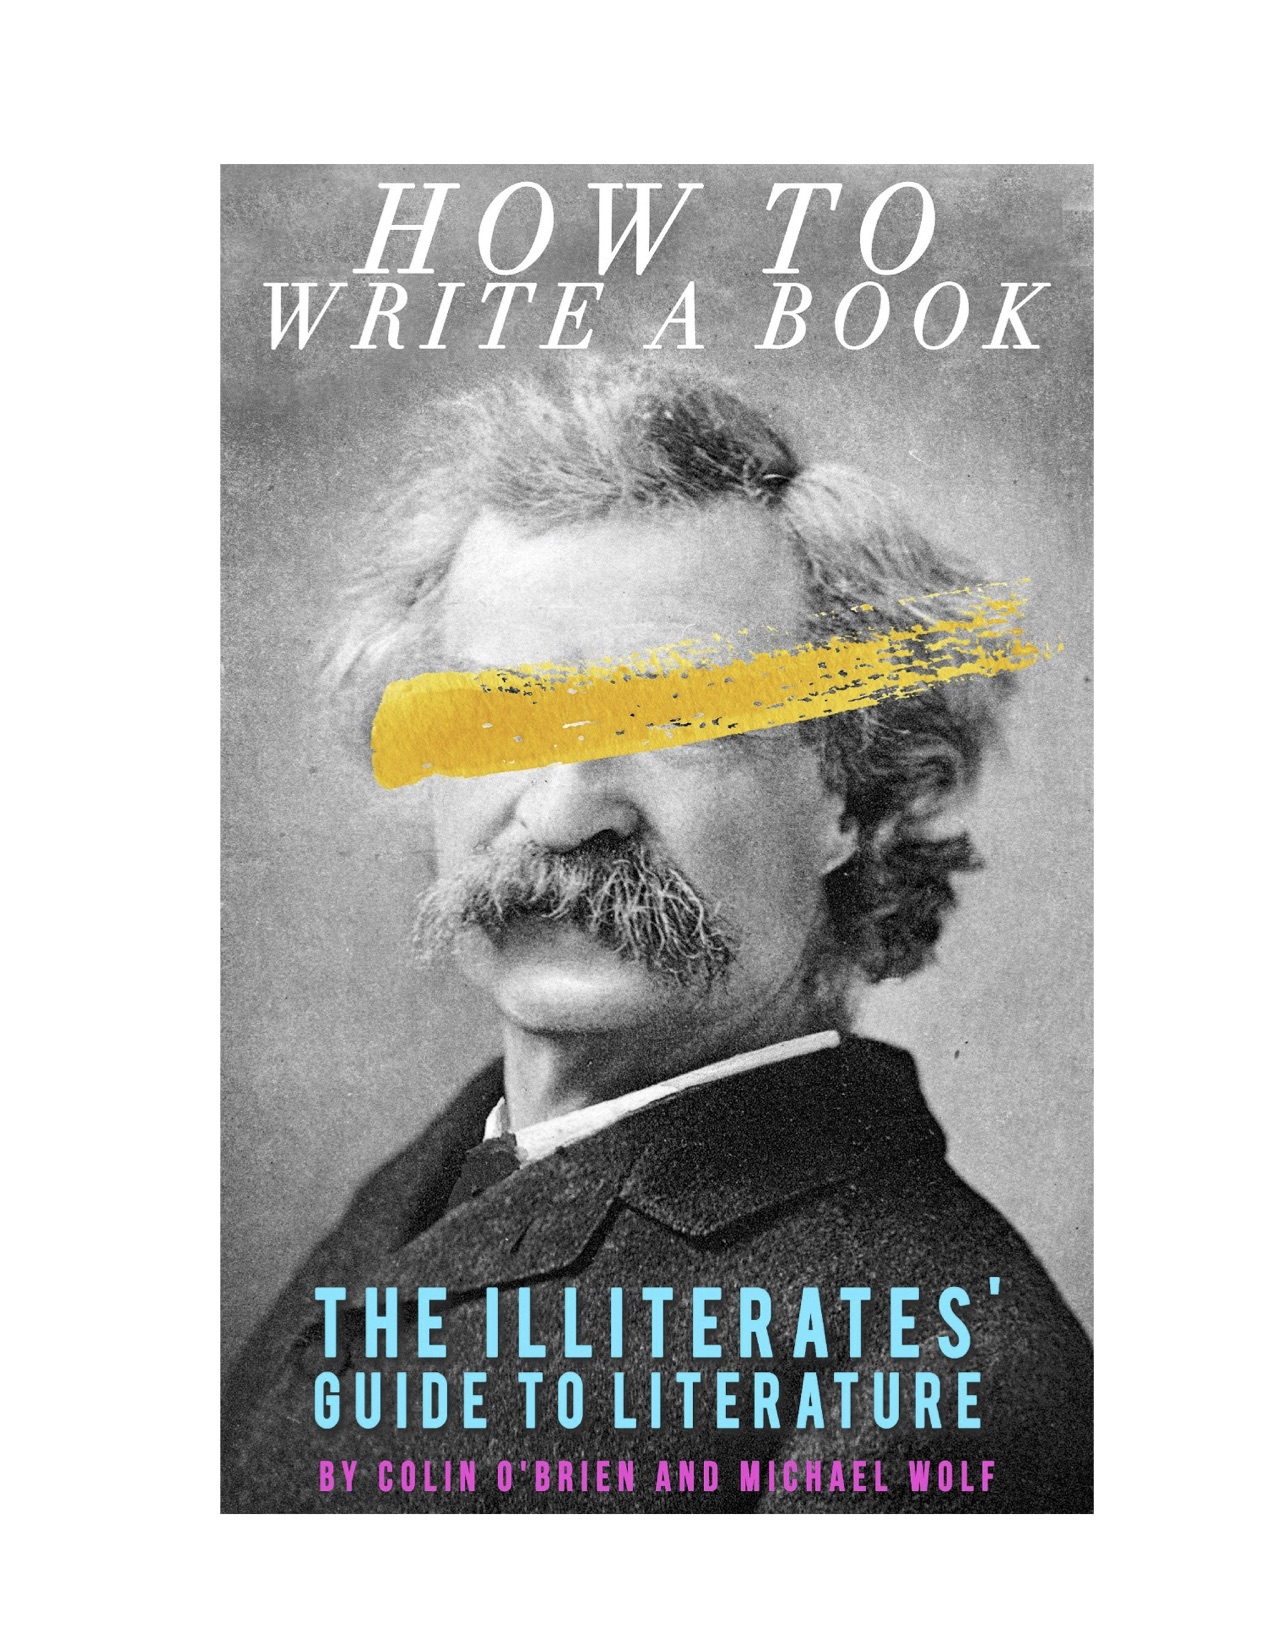 LITERATI presents A BOOK! - How To Write A Book is the ultimate fake guide to the literary world that you can read to procrastinate writing your shitty novel. Chock full of tips and tricks about writing, reading, publishing and getting out of talking to Jonathan Franzen at parties